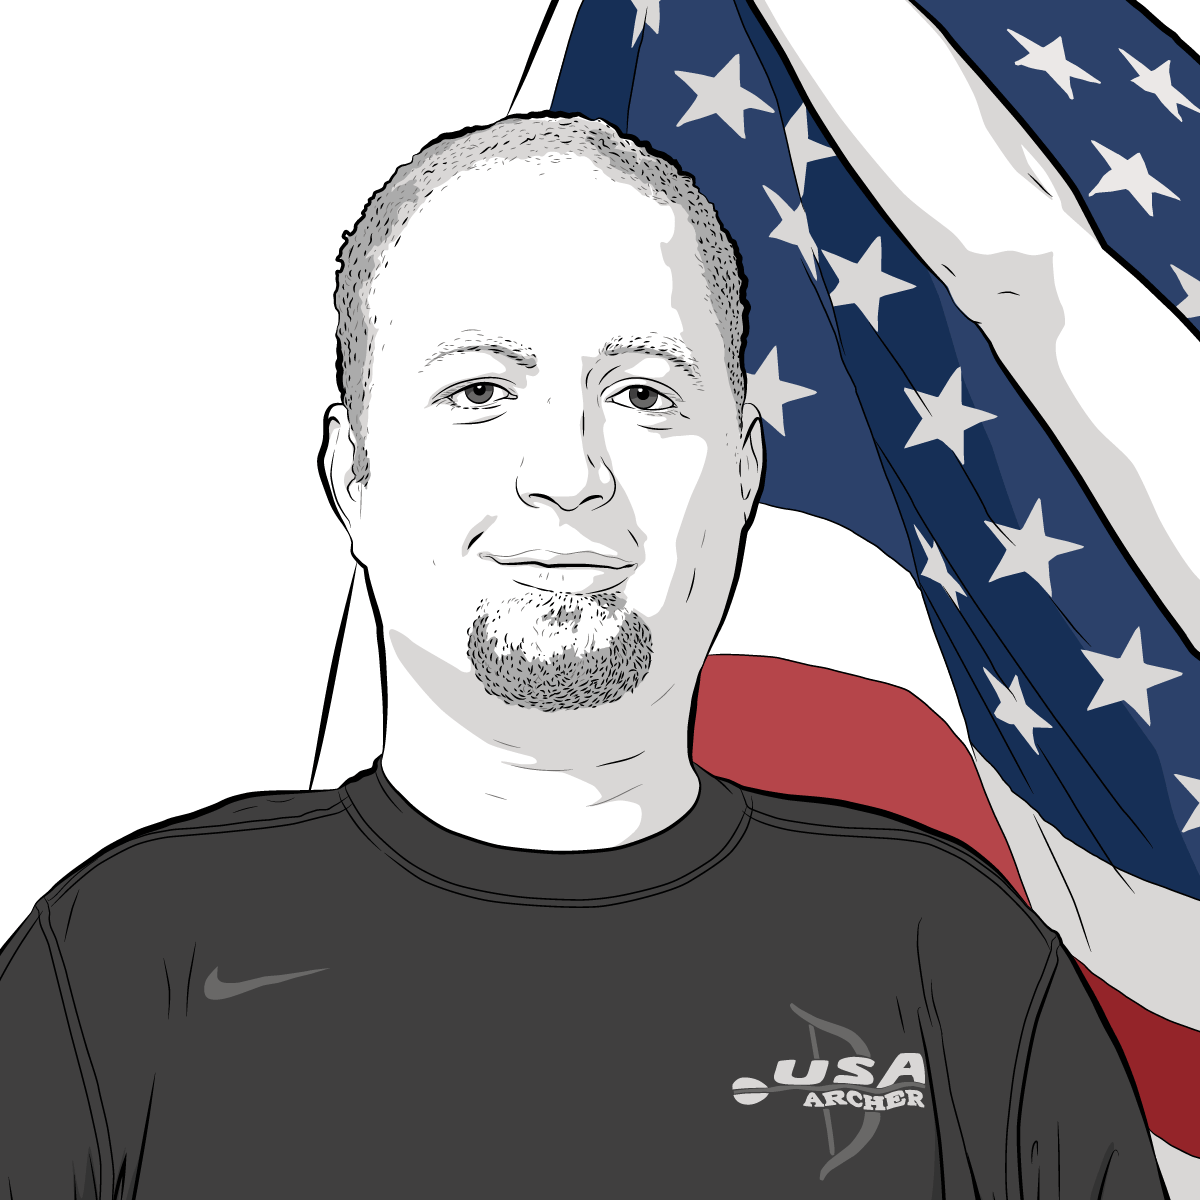 Athlete Portrait of Matt Stutzman, Illustration by Max Hancock